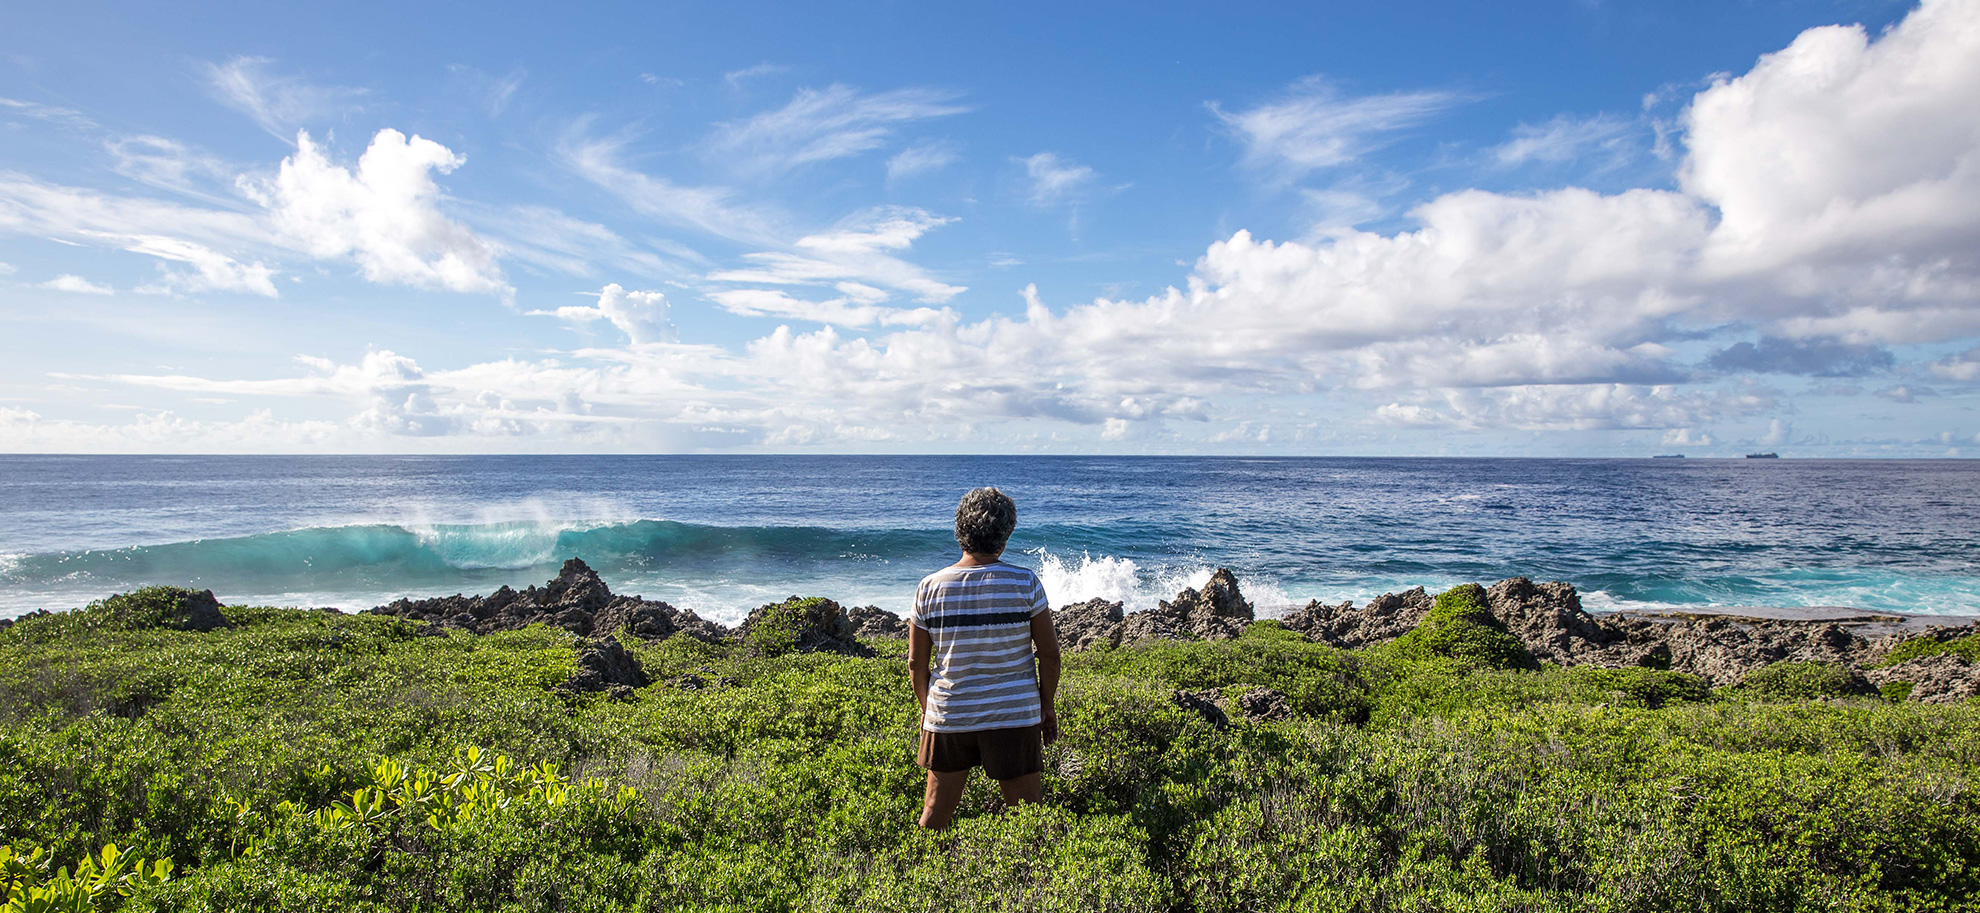 Deborah Fleming looks out onto the Pacific Ocean from the island of Tinian on August 8.